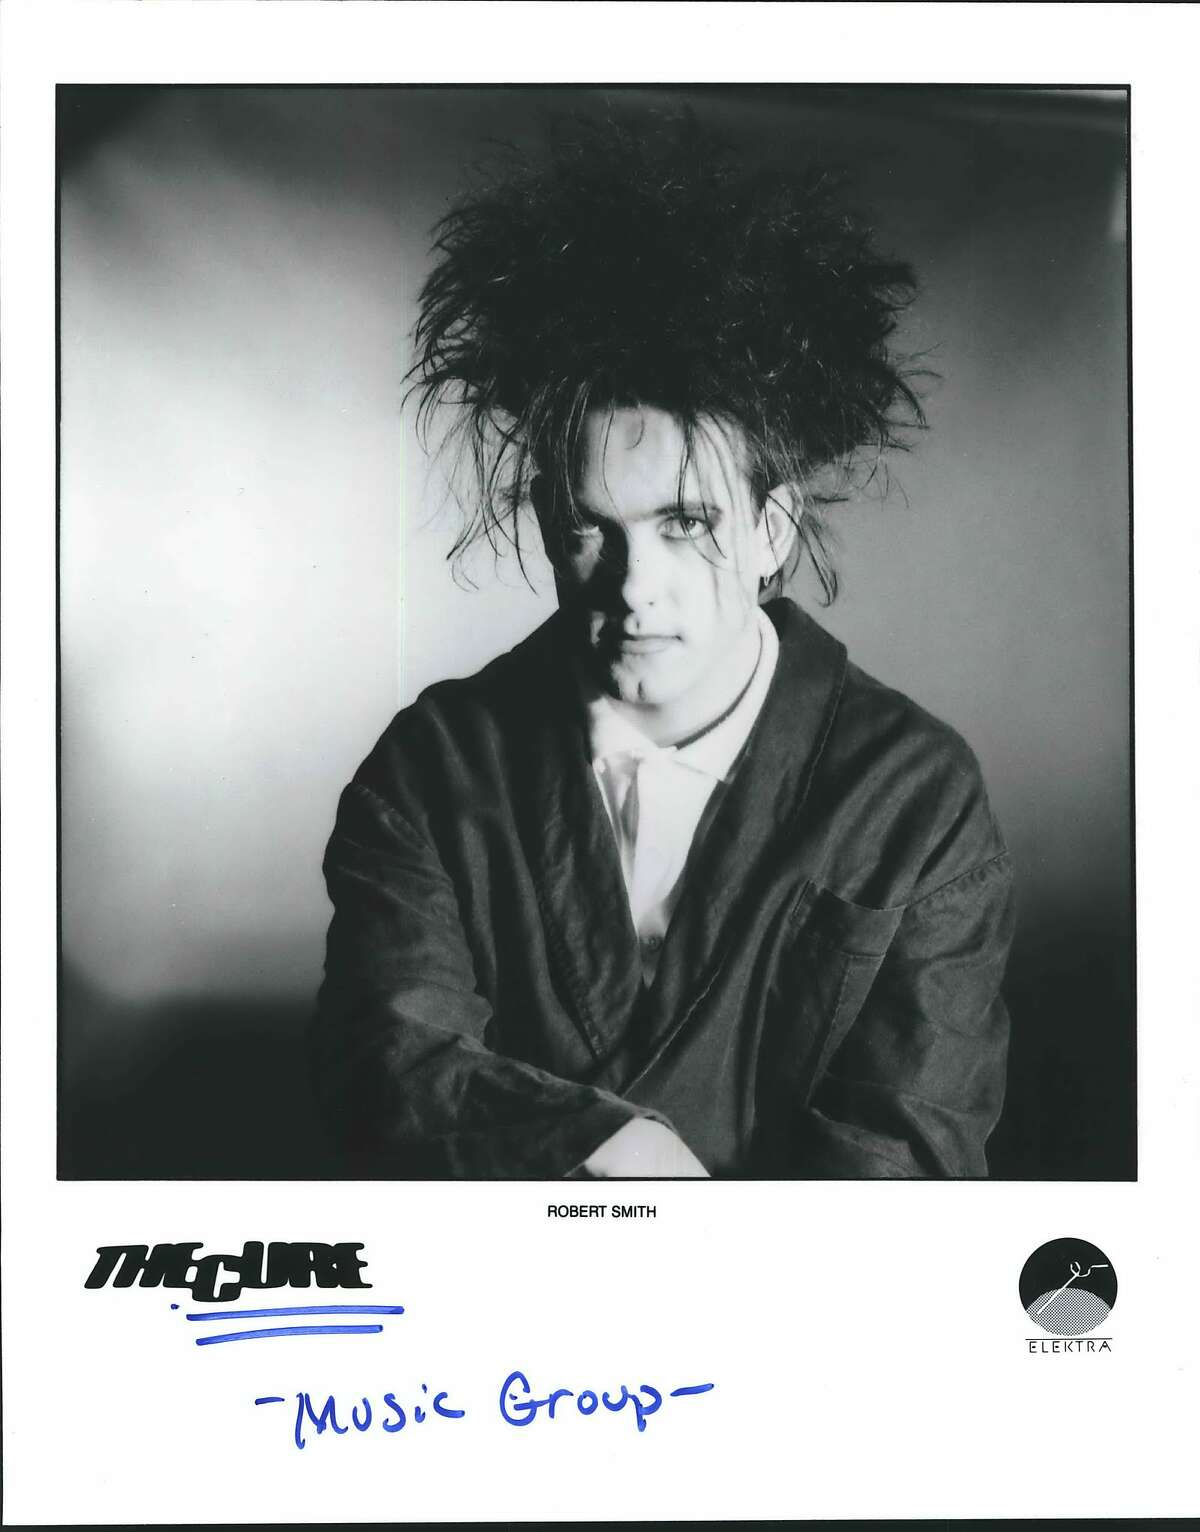 Robert Smith, The Cure - music group